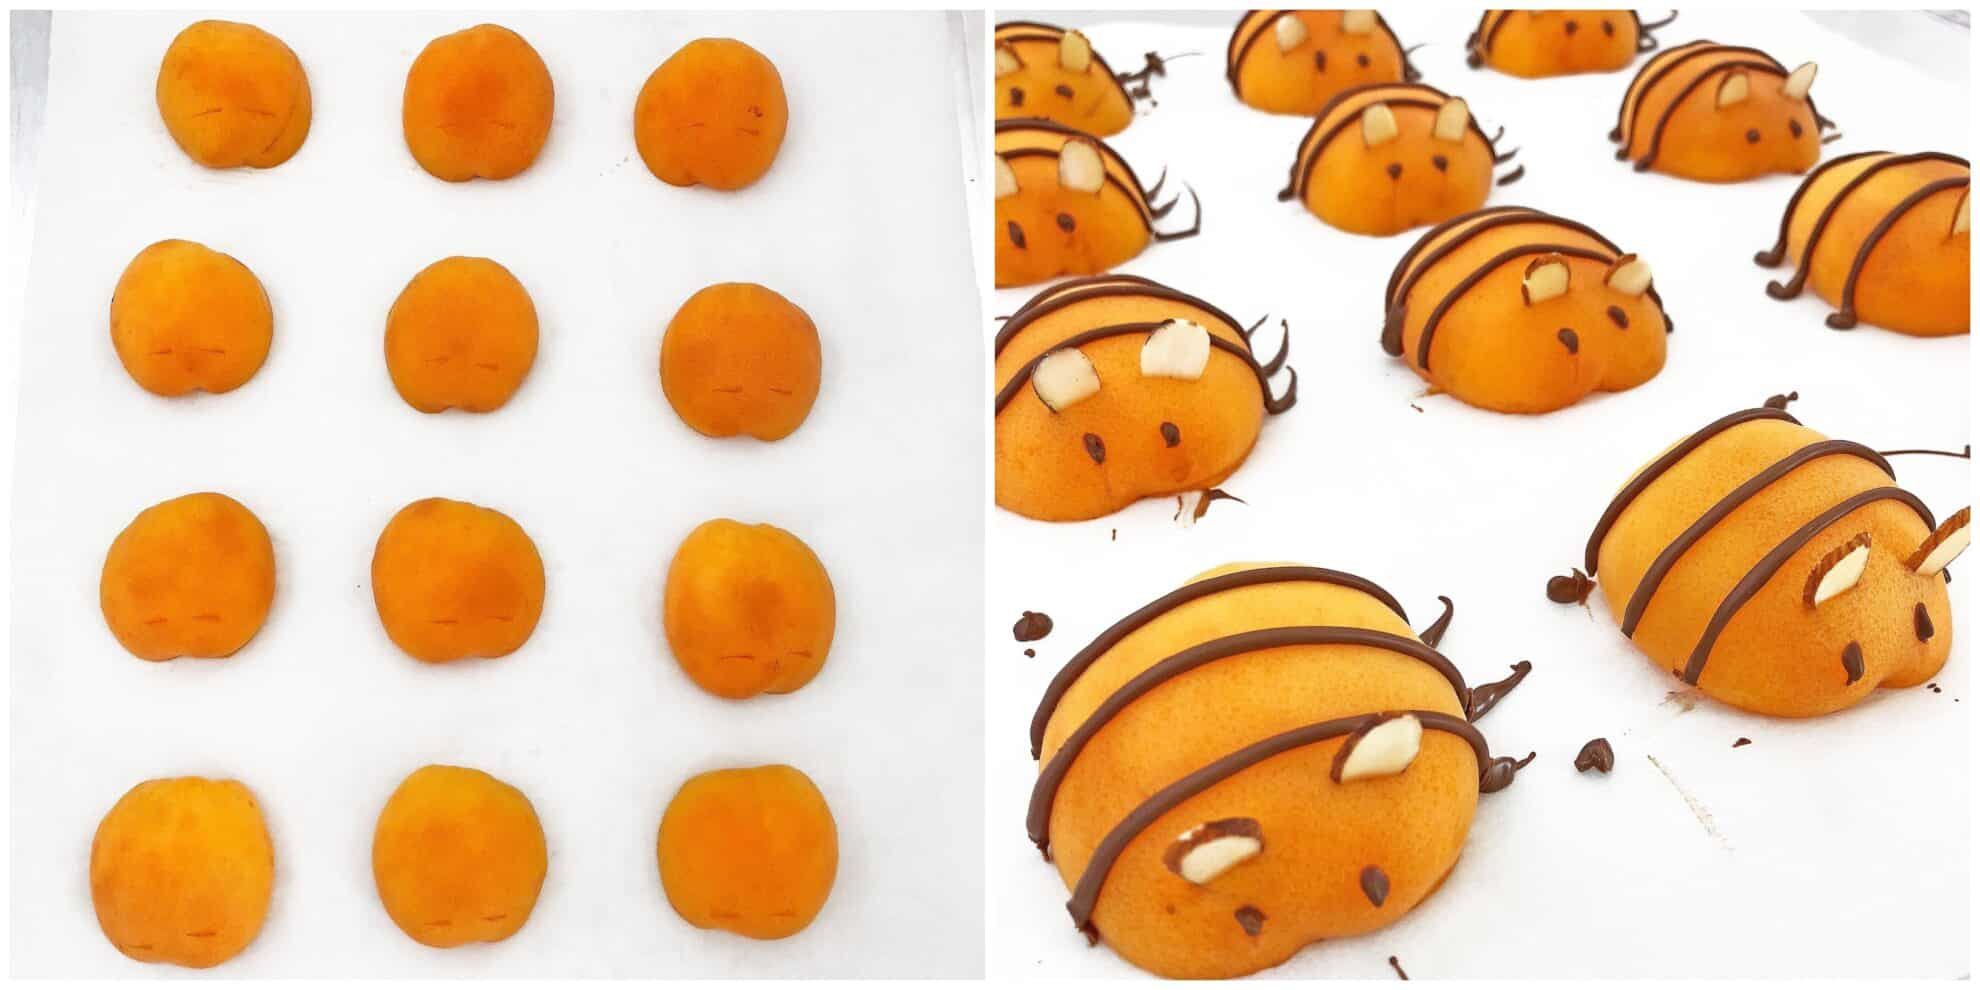 agar-agar, Apricot Bee Cake Recipe, apricot bees, apricot cake, cake, cake recipe, dessert, easy recipe, fresh apricot, kid-friendly dessert, kids love it, sheet cake, summer dessert